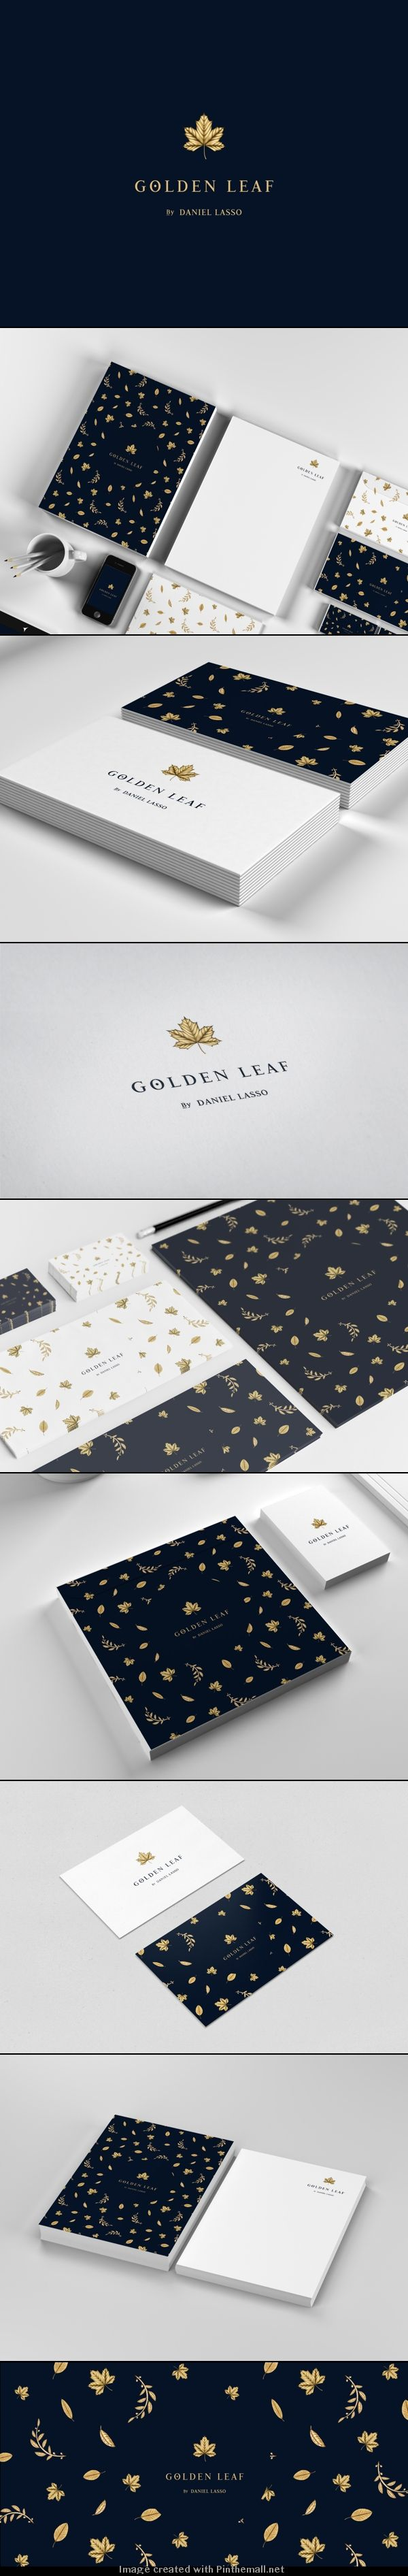 #branding Golden Leaf by Daniel Lasso